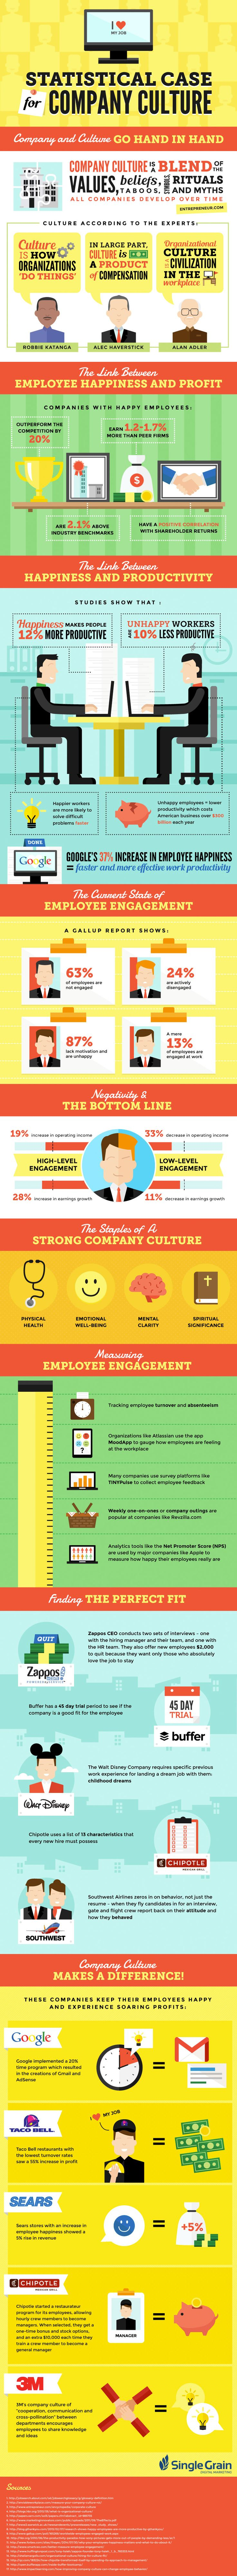 21 Company Culture Examples to Model